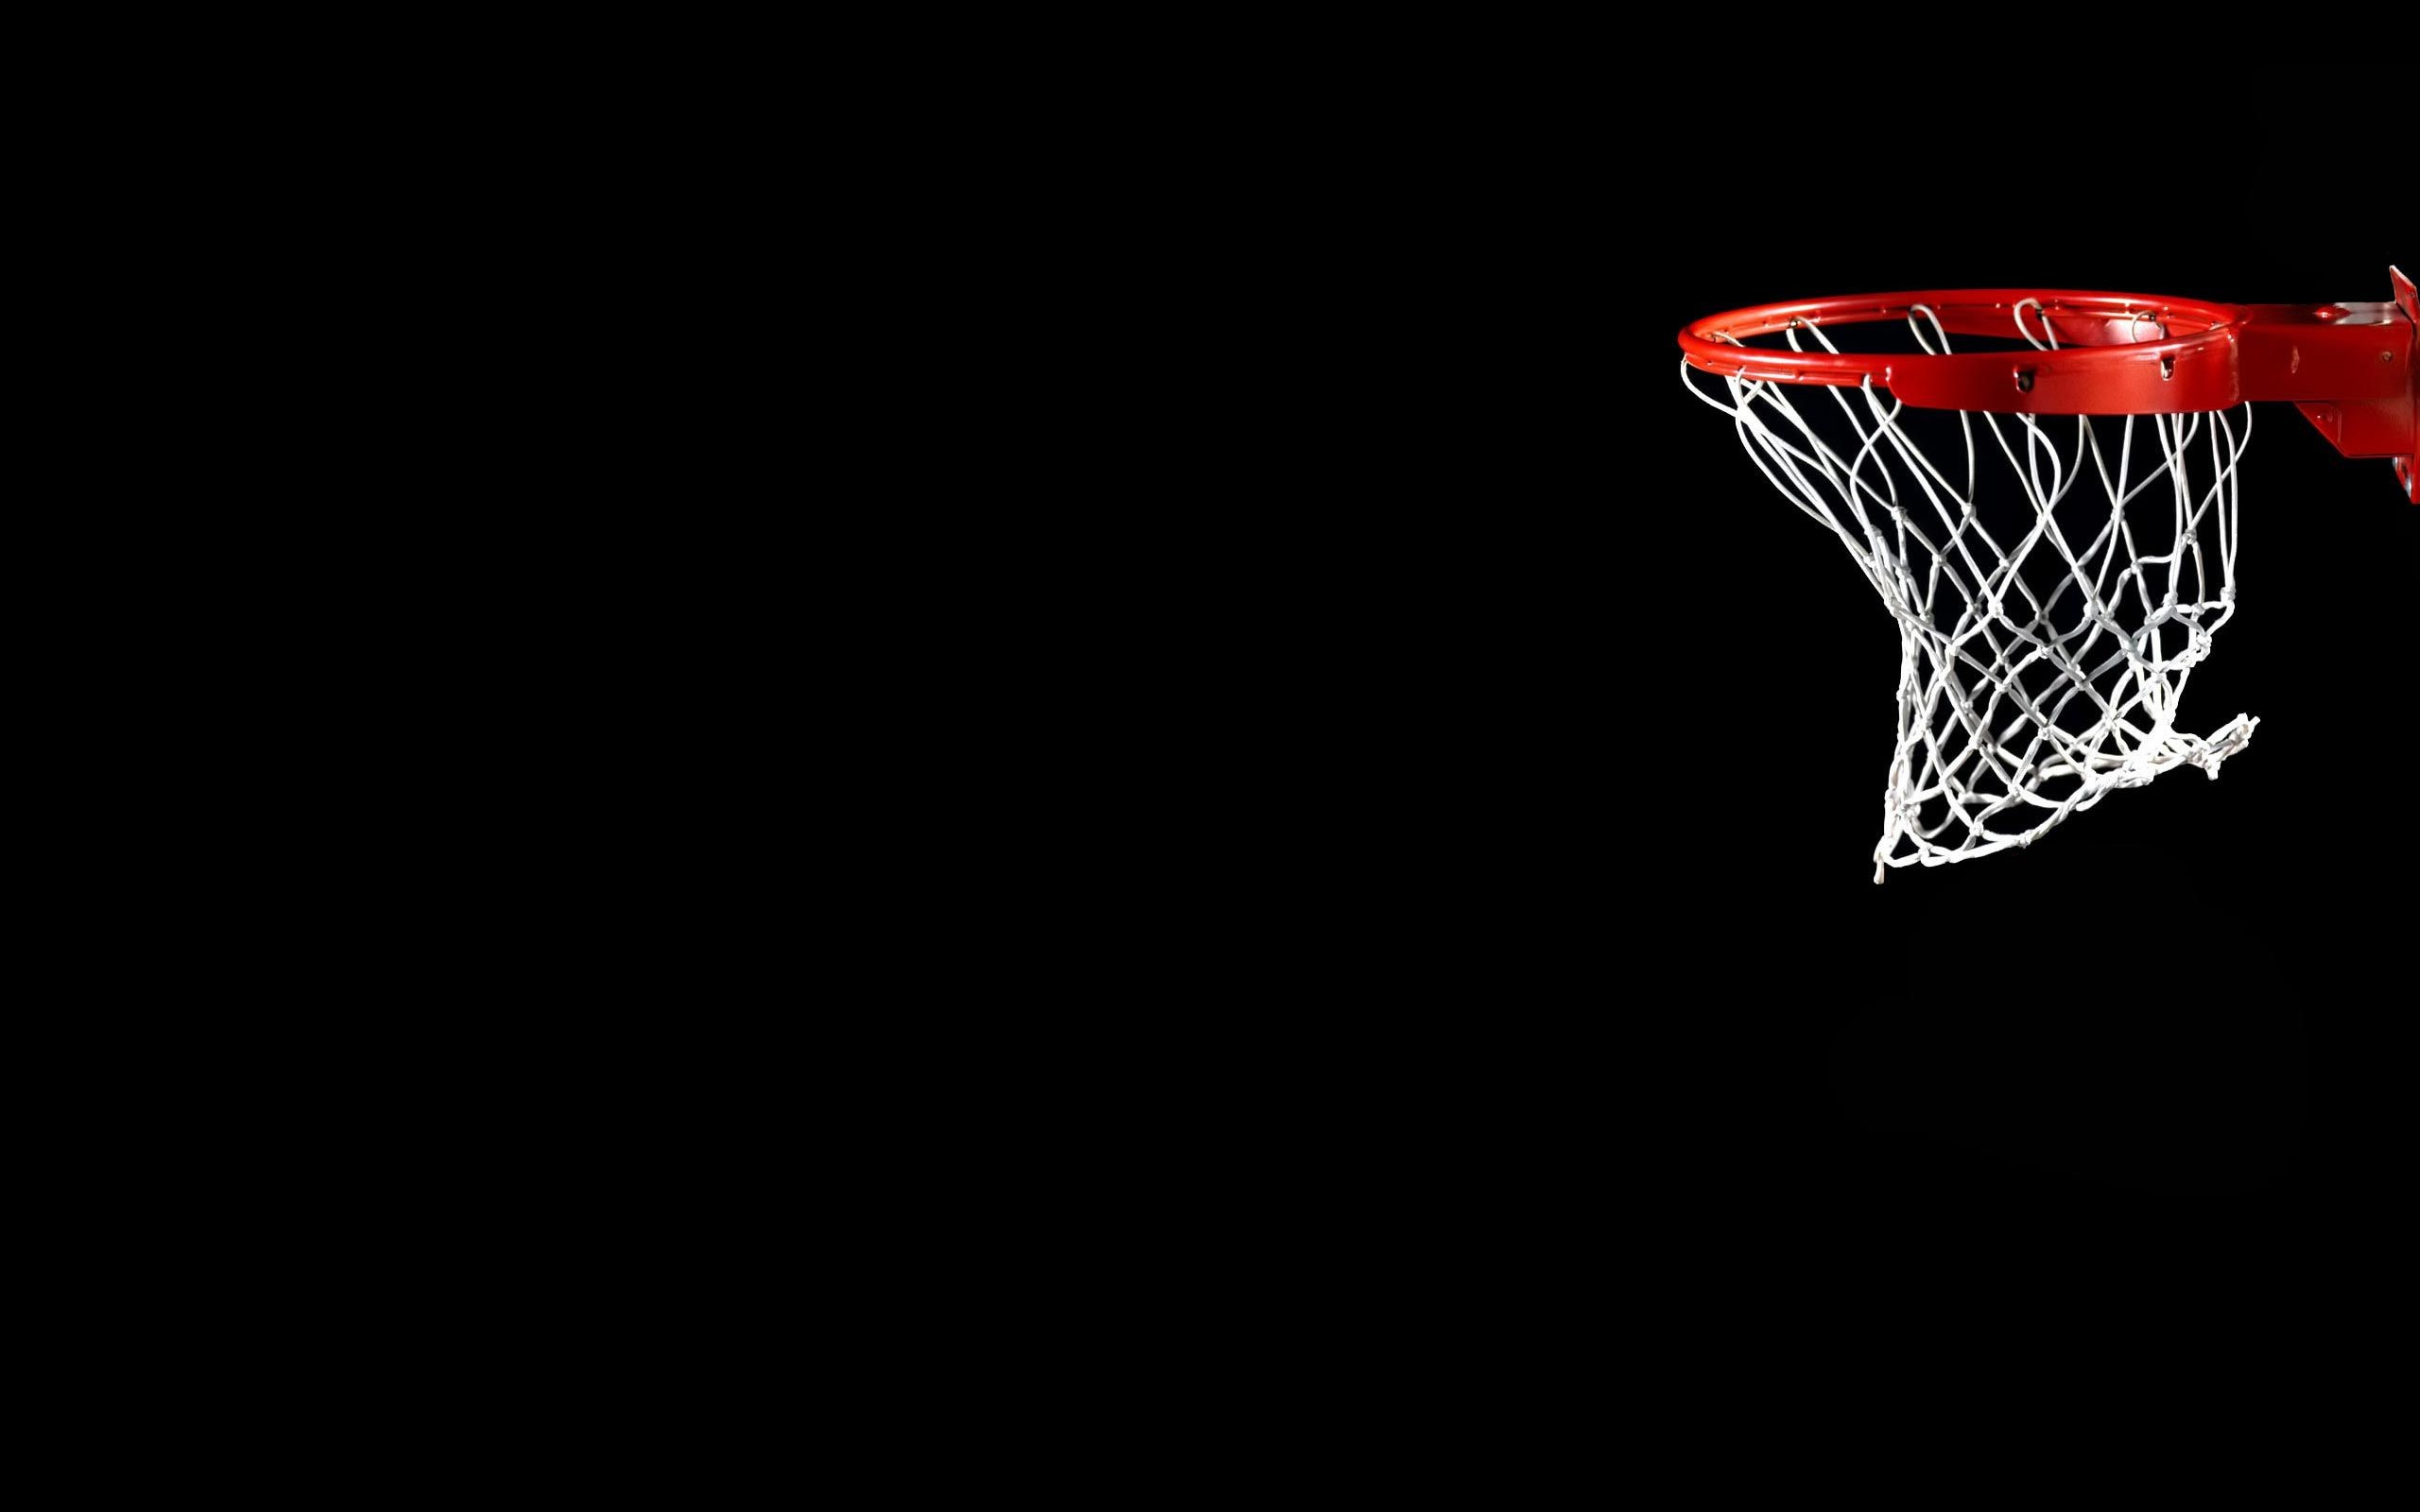 2560x1600 Nike Basketball Wallpaper Picture